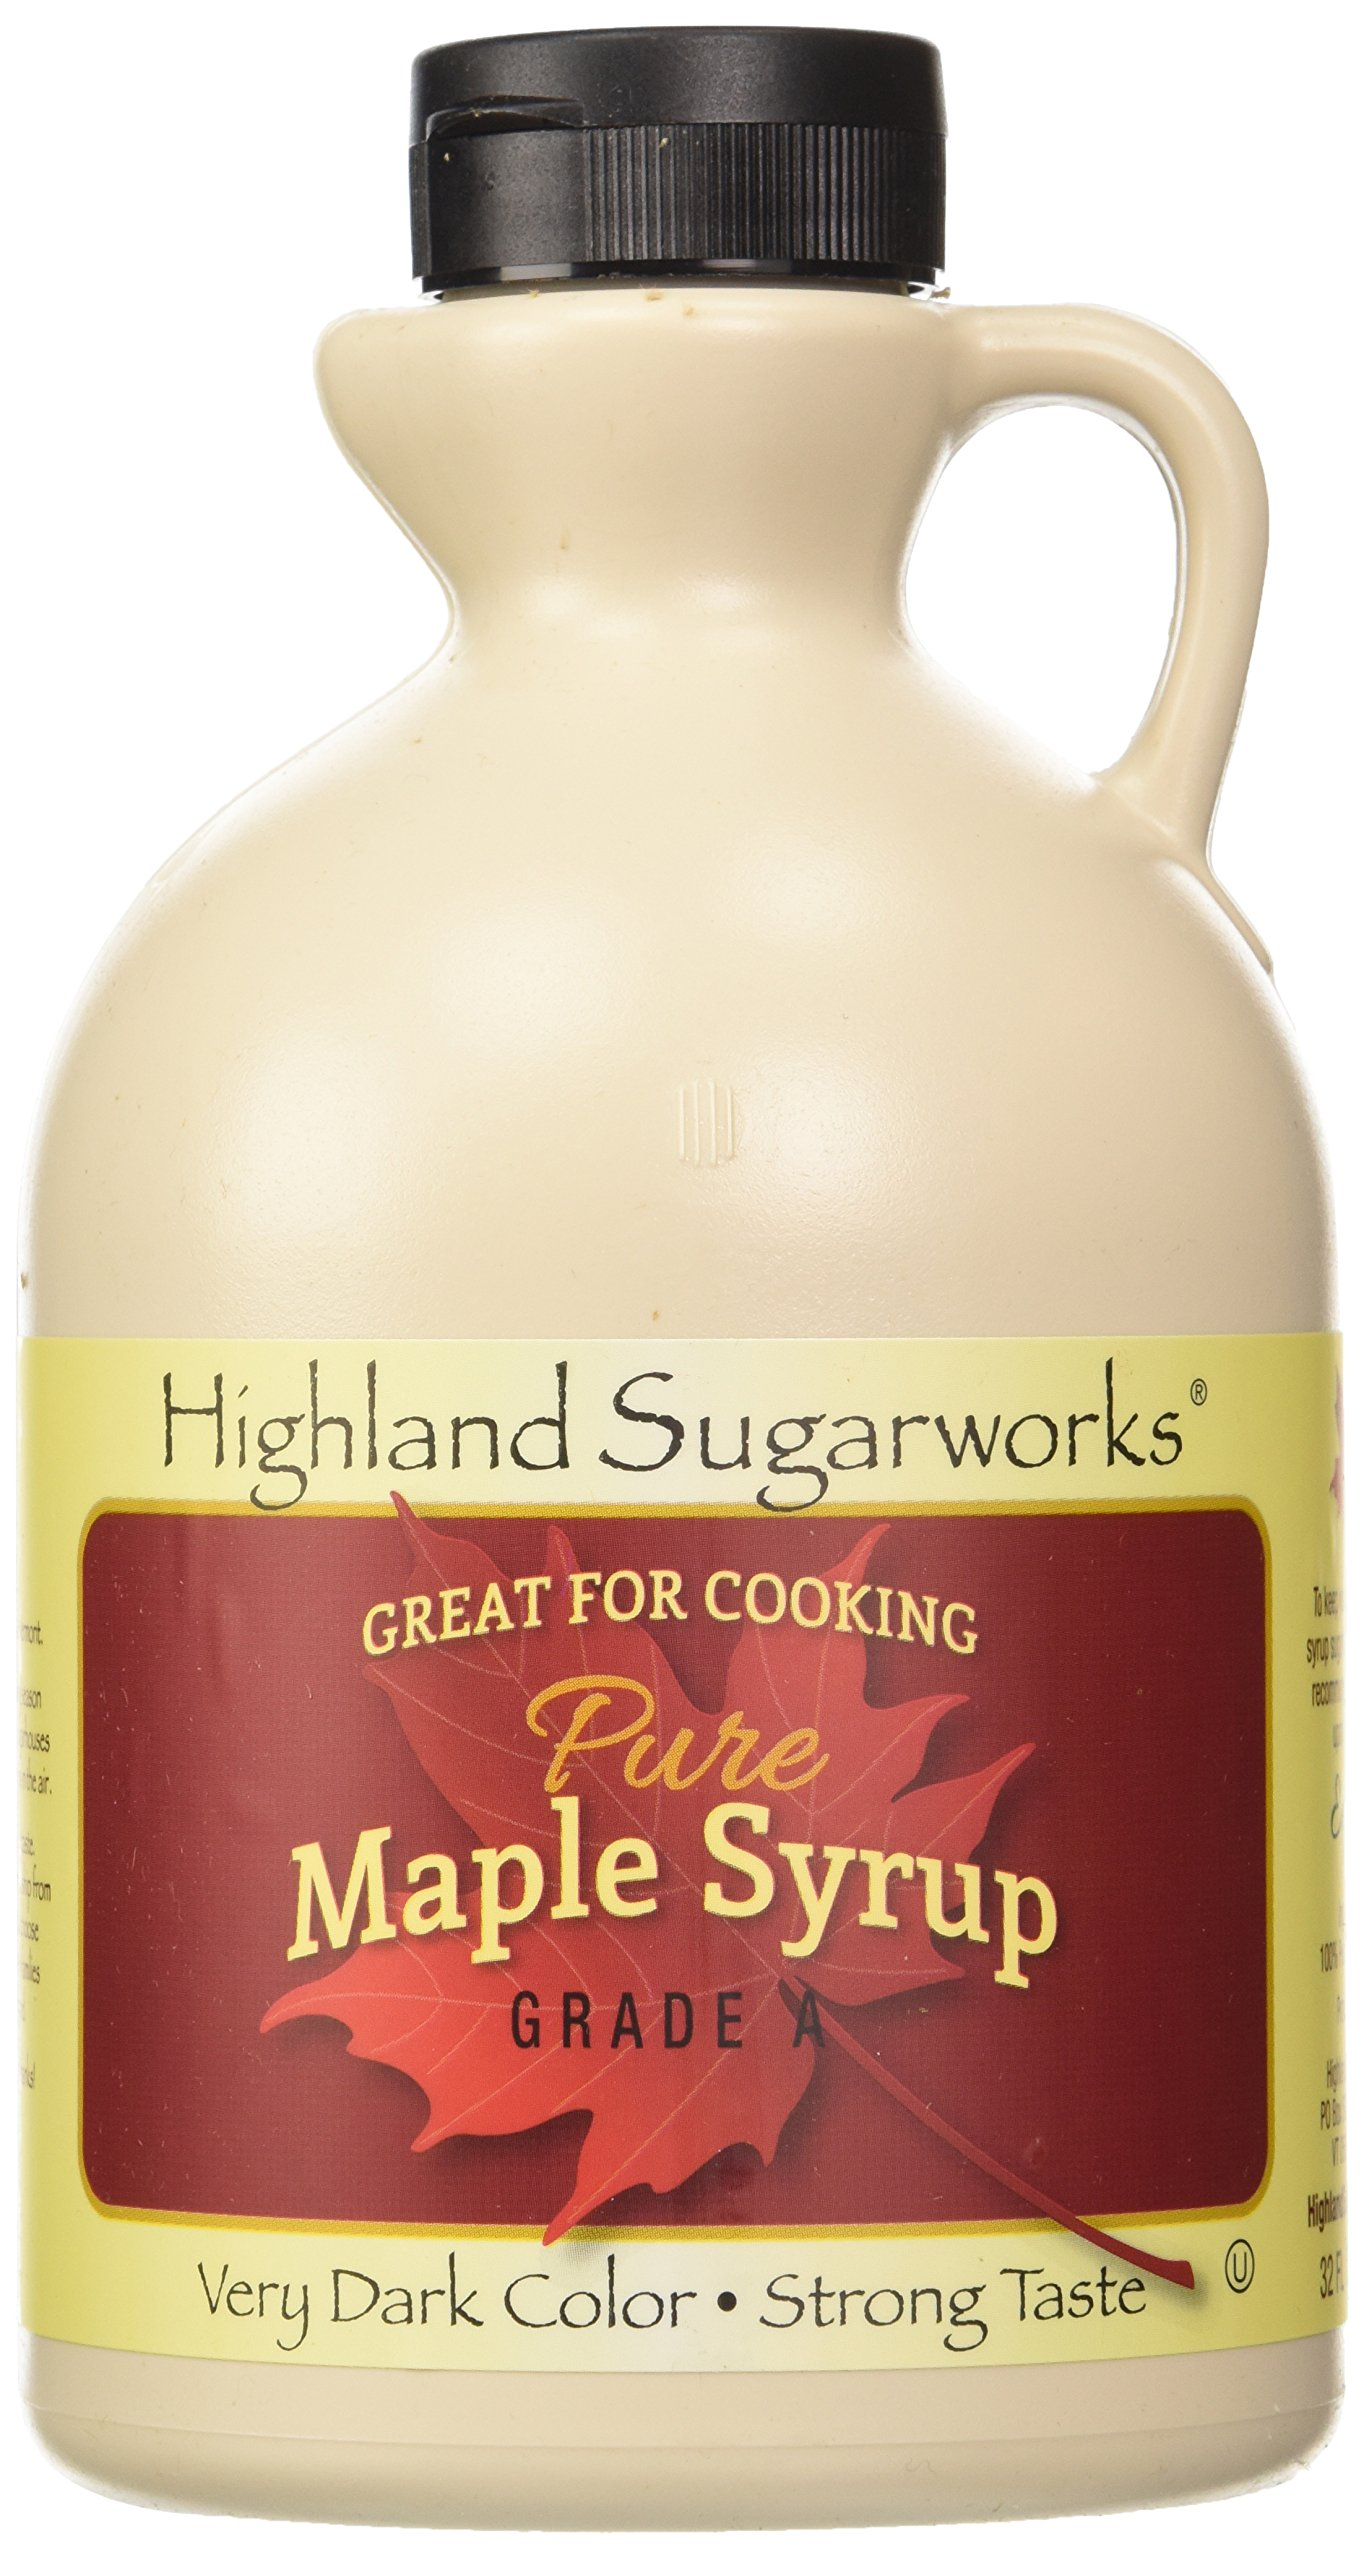 Highland Sugarworks Jug 100% Maple Syrup Pure Very Dark Color Strong Taste, 32 oz (Packing May Vary)